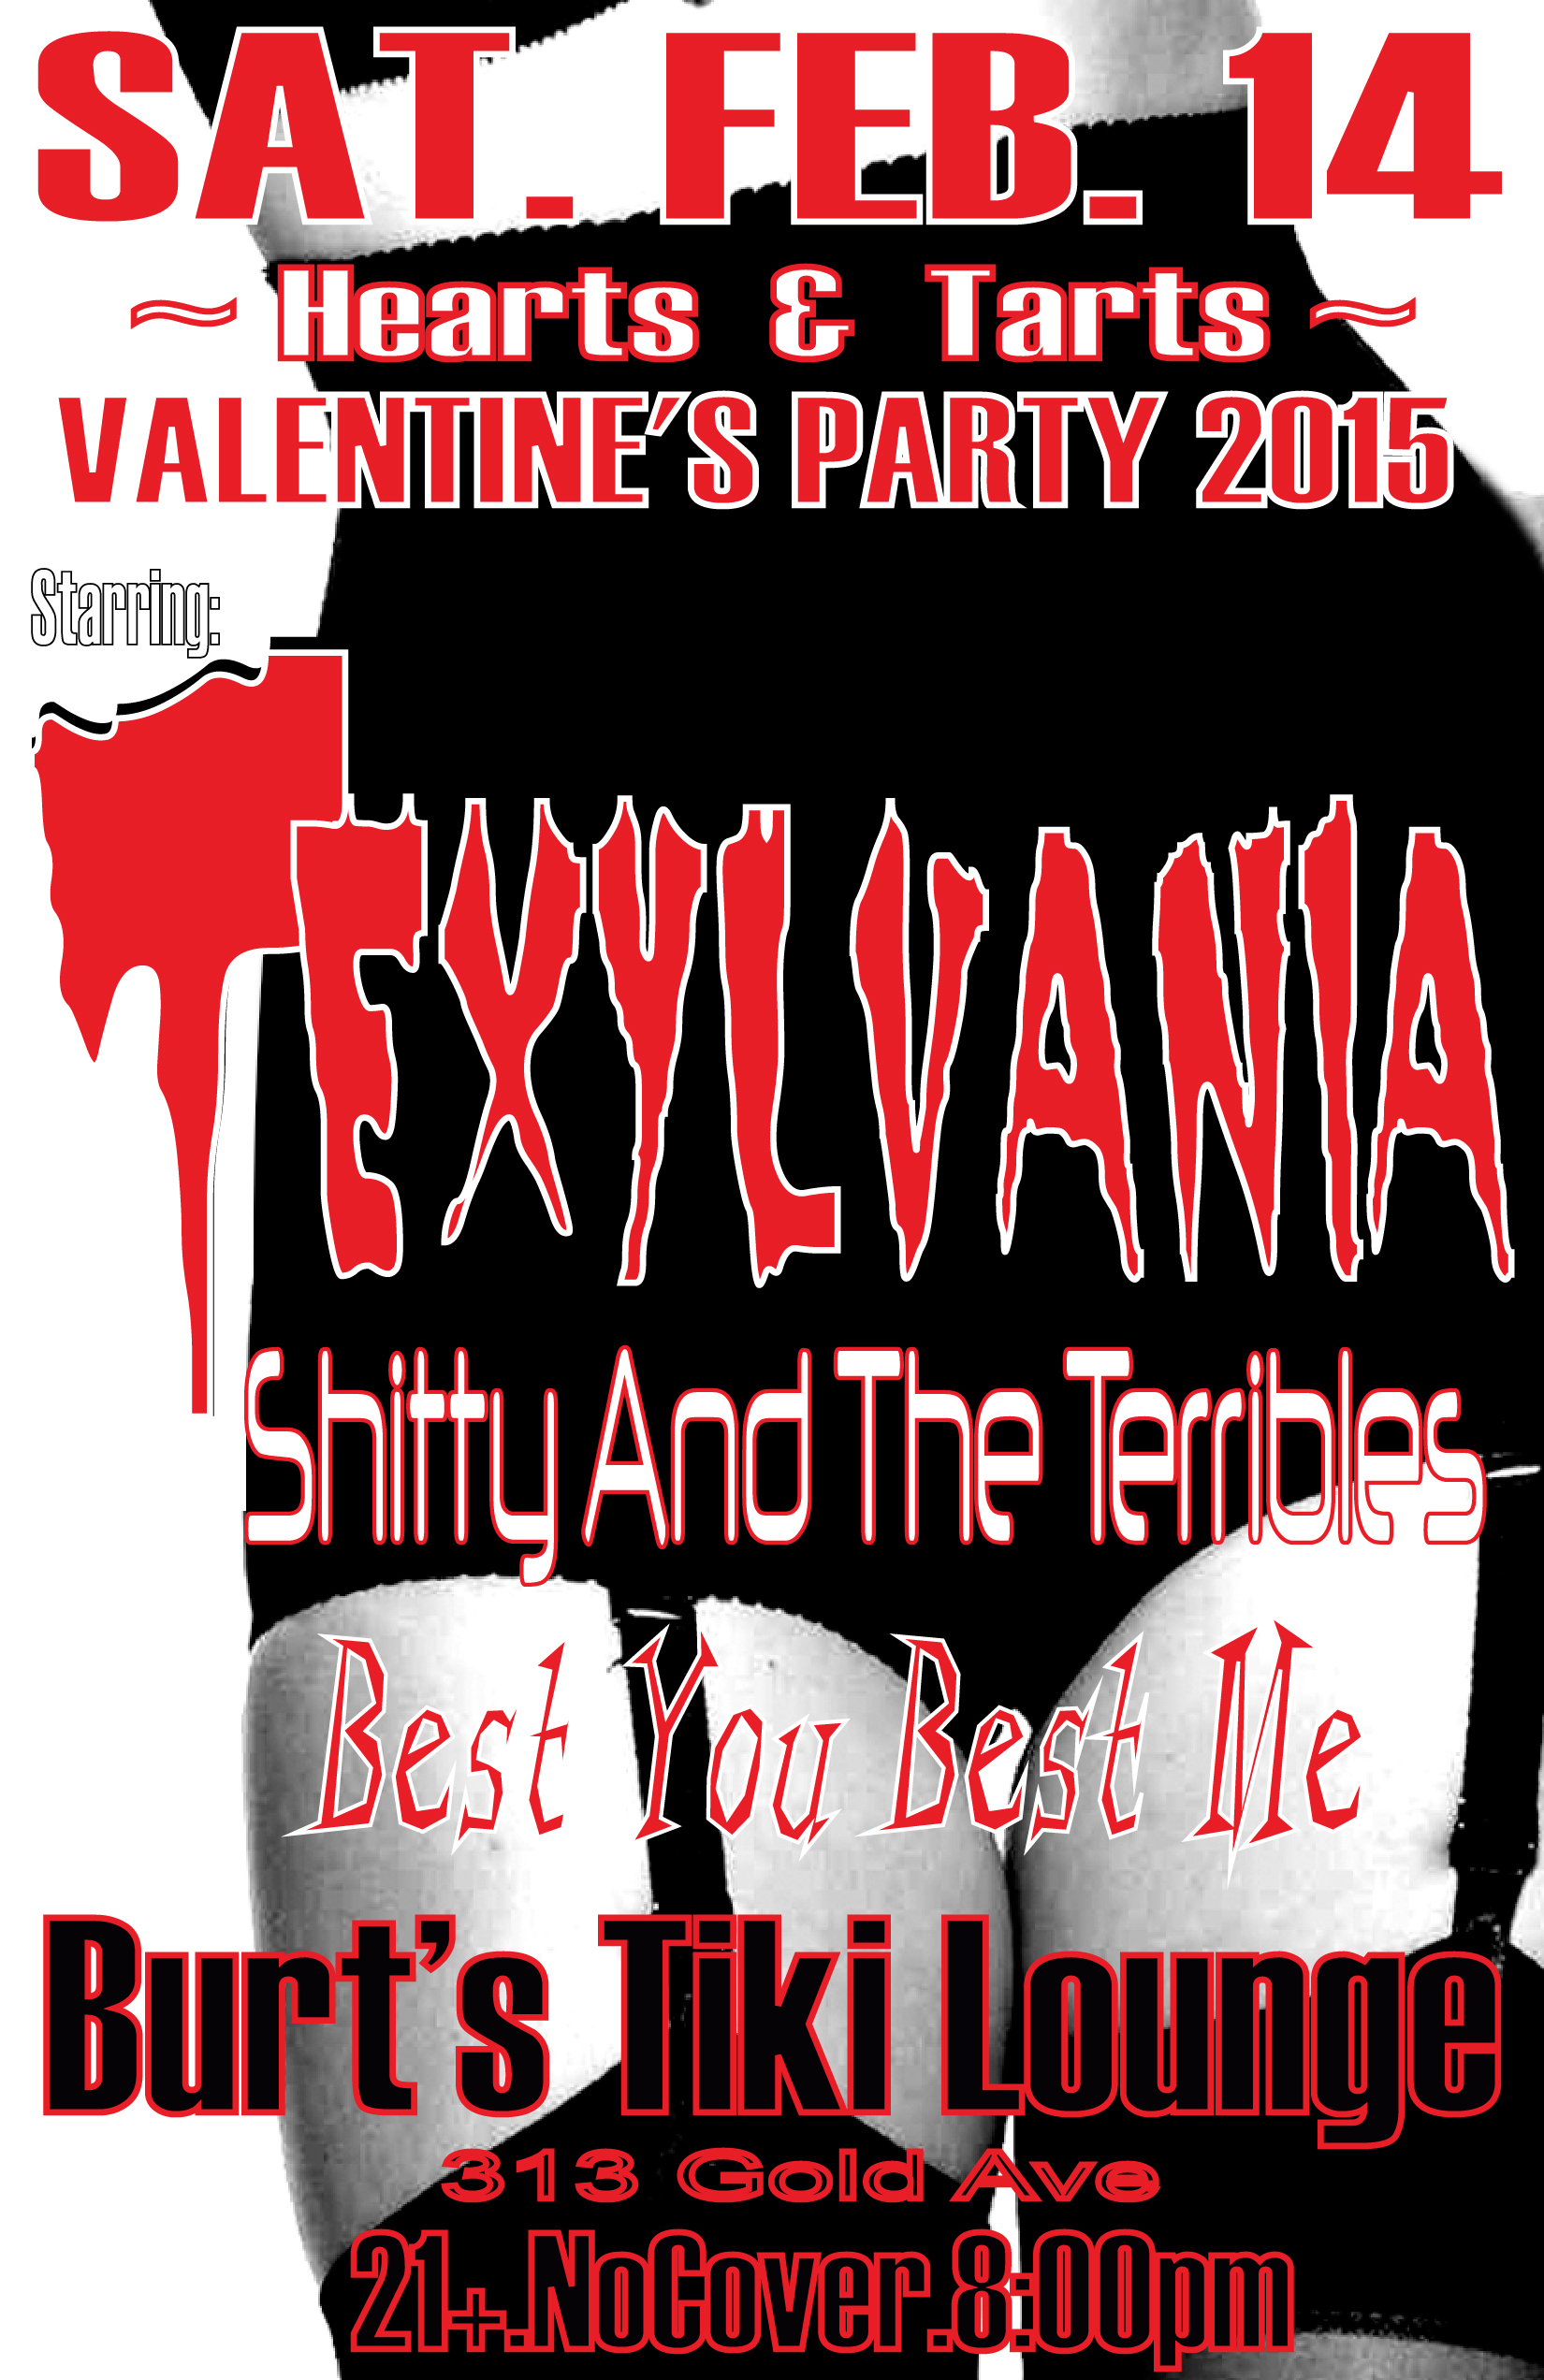 TEXYLVANIA'S 'Hearts&Tarts' V.Day Party 2015